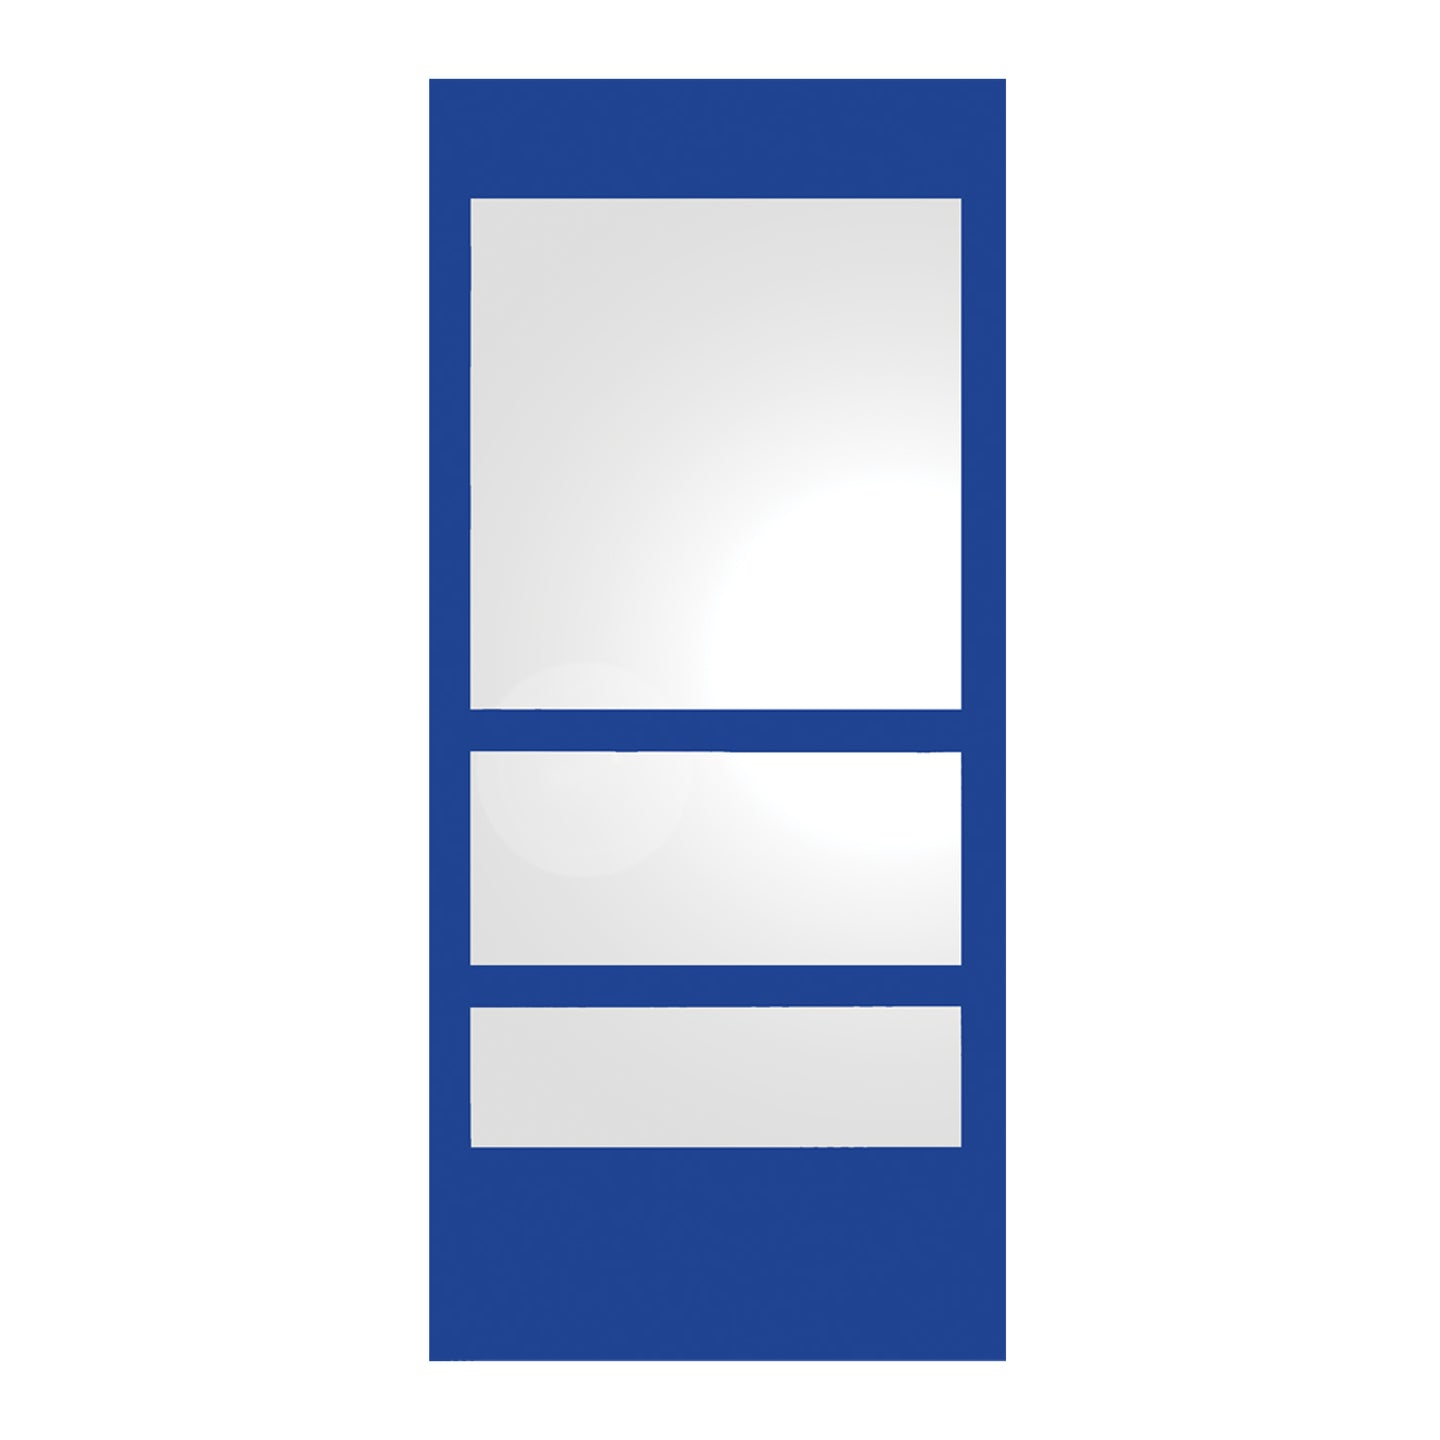 Whitehaus New Generation Rectangular Ecoloom Mirror with Laminated Colored Glass Border